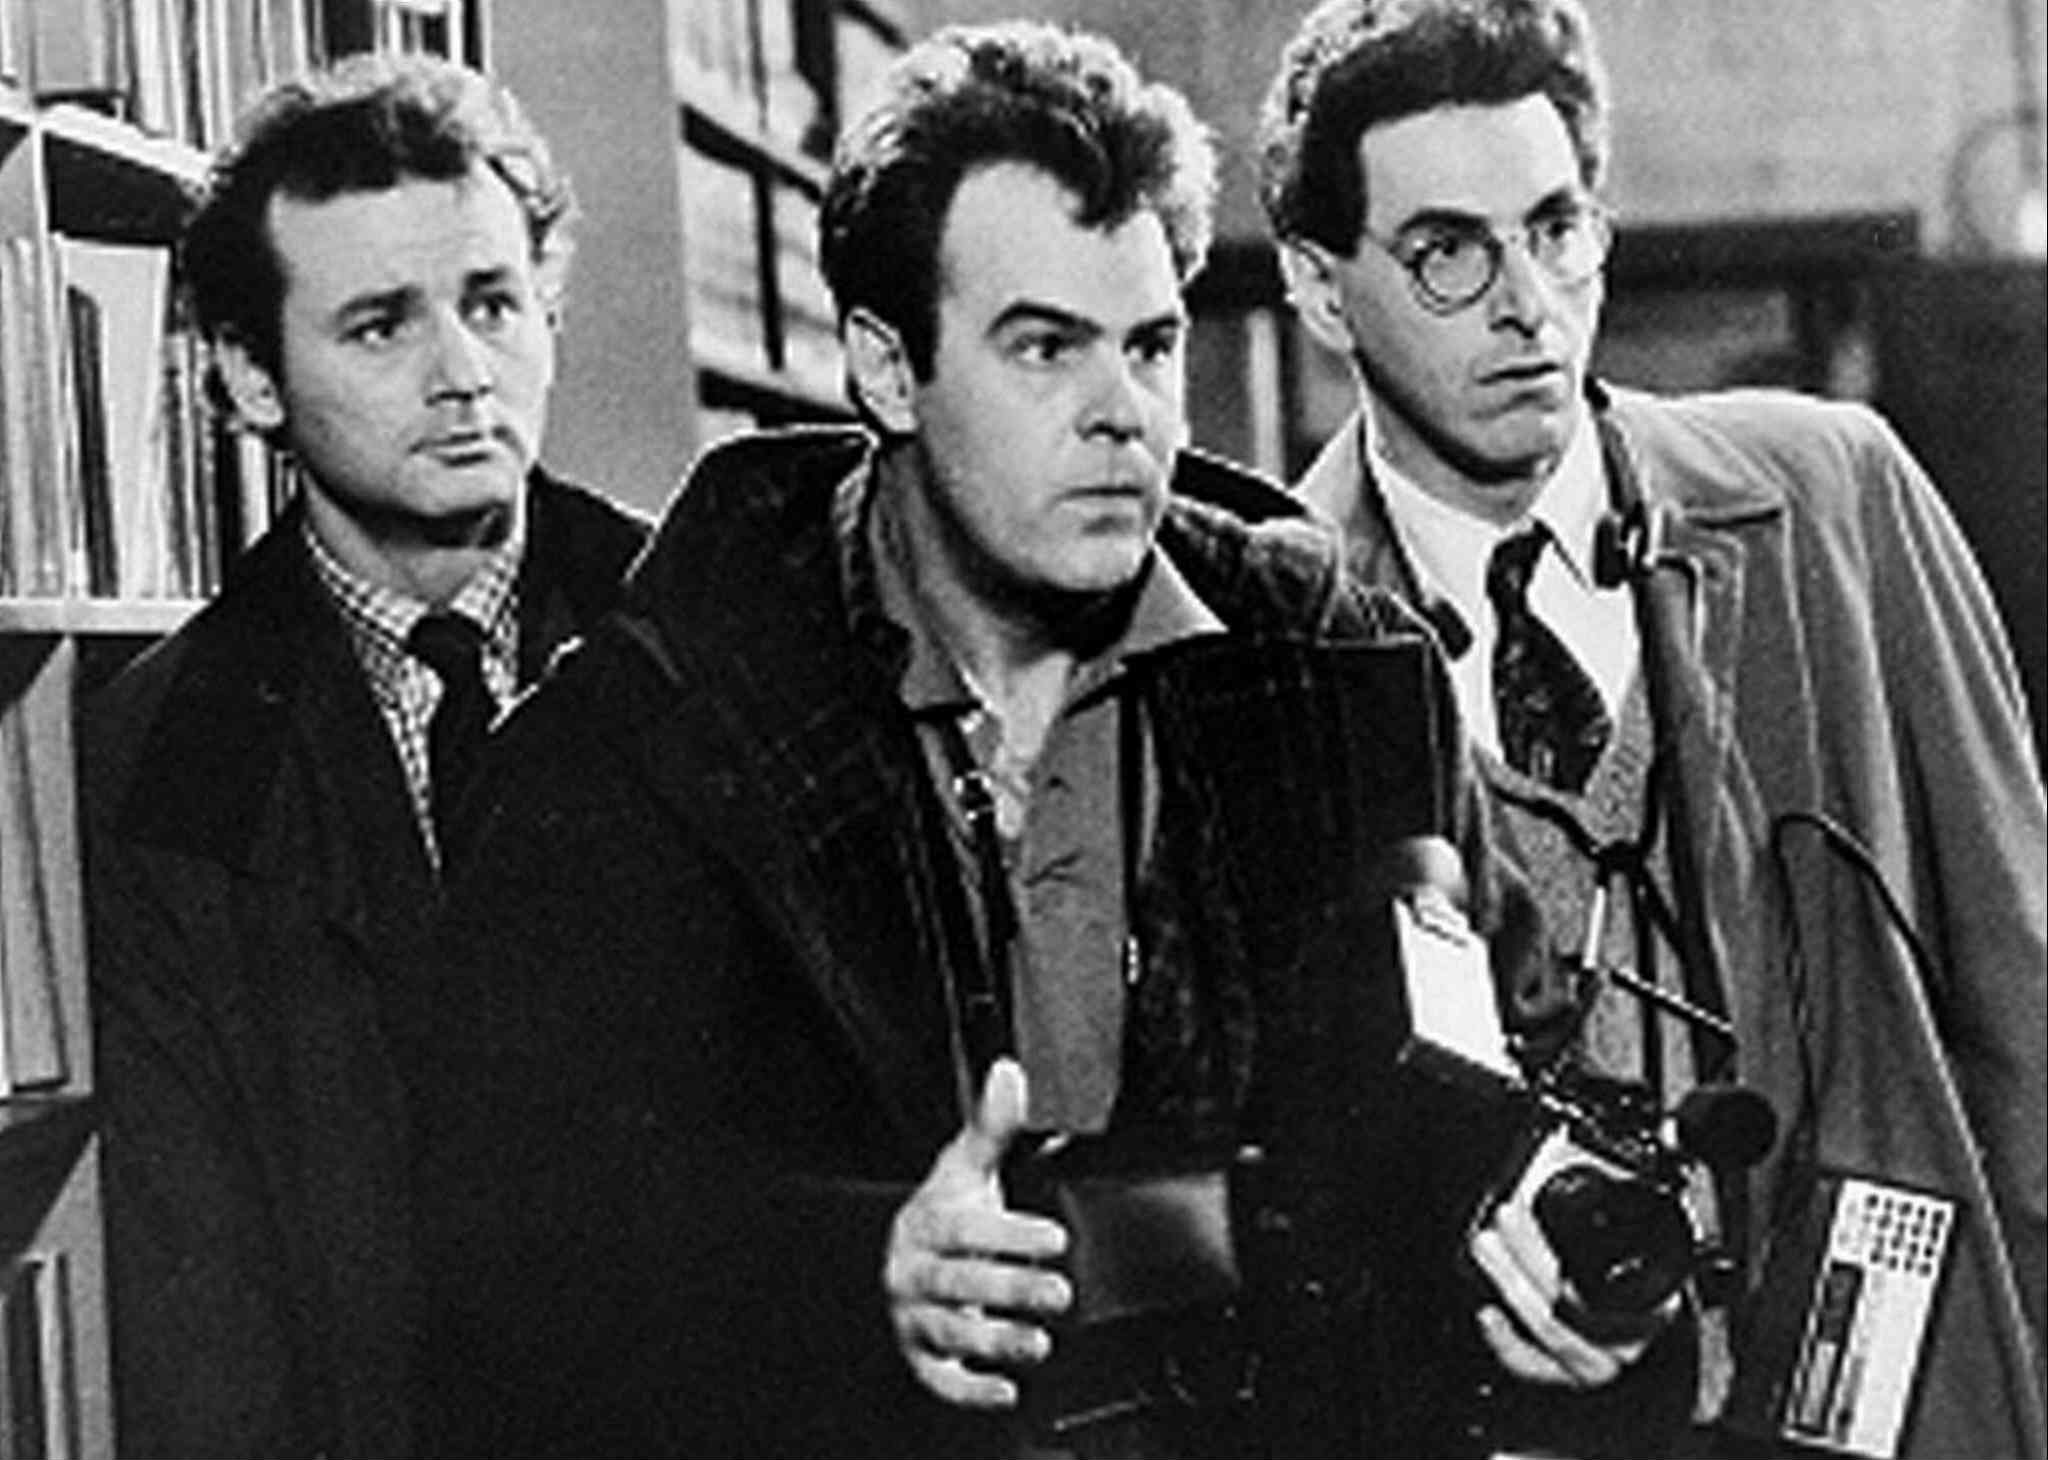 Bill Murray (left to right), Dan Aykroyd and Harold Ramis appear in a scene from the 1984 movie Ghostbusters. If there's something strange in your neighbourhood this summer, it might just be the beloved comedy Ghostbusters returning to theatre screens for a limited engagement.